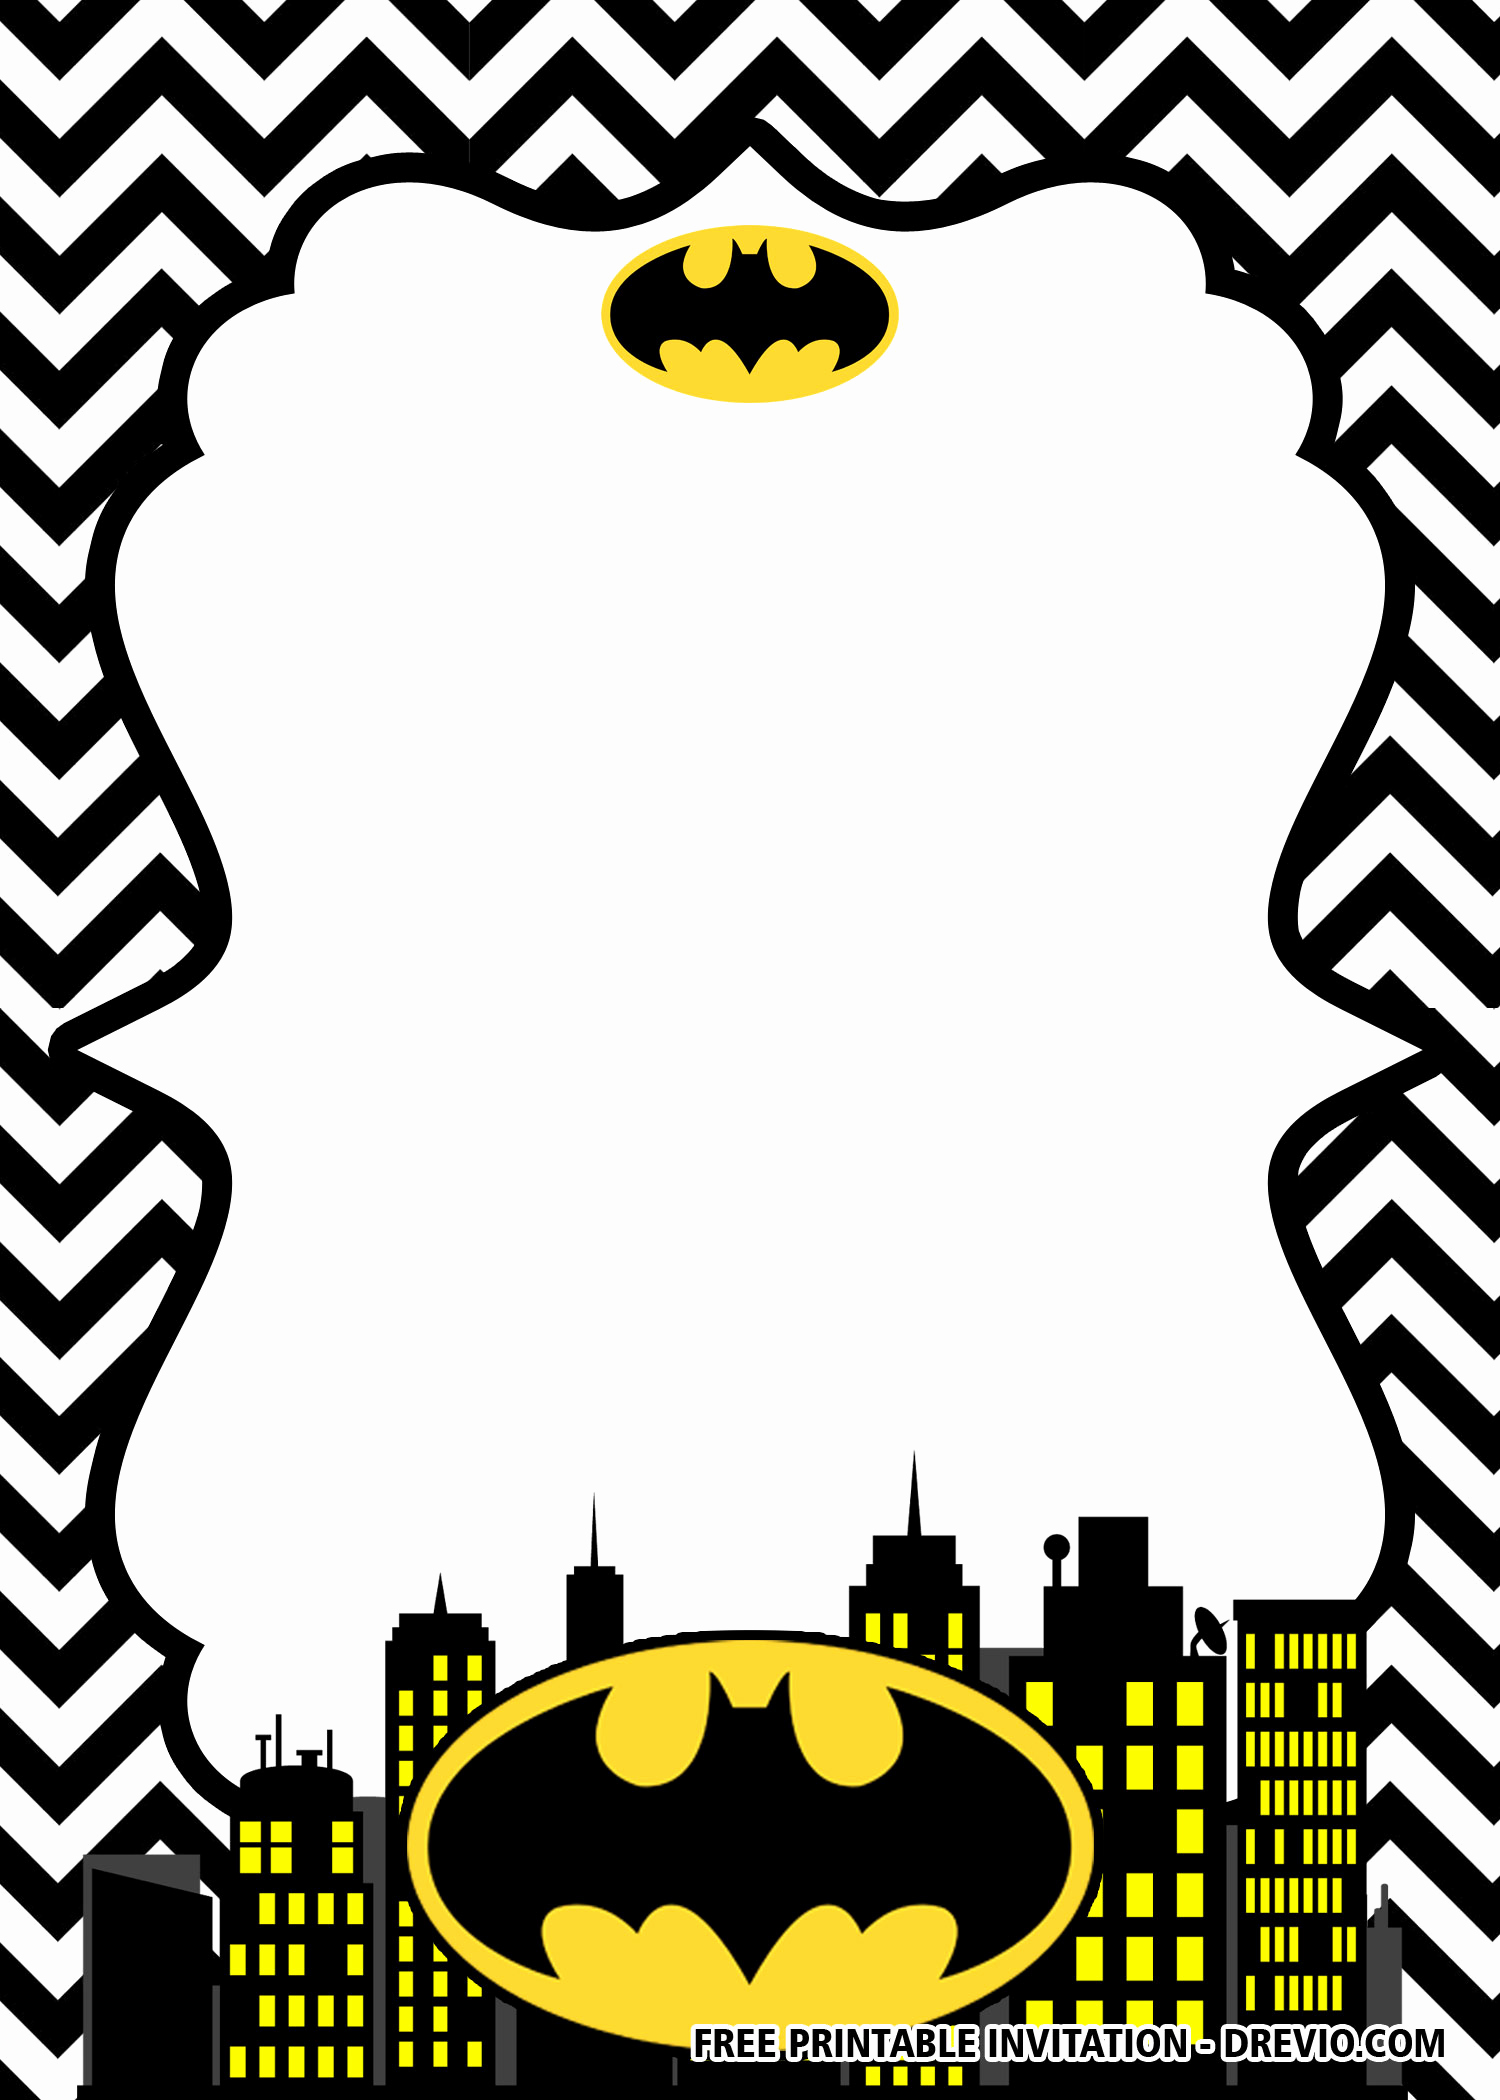 Free Batman Invitation Template Awesome Free Printable Batman Birthday Invitation Templates